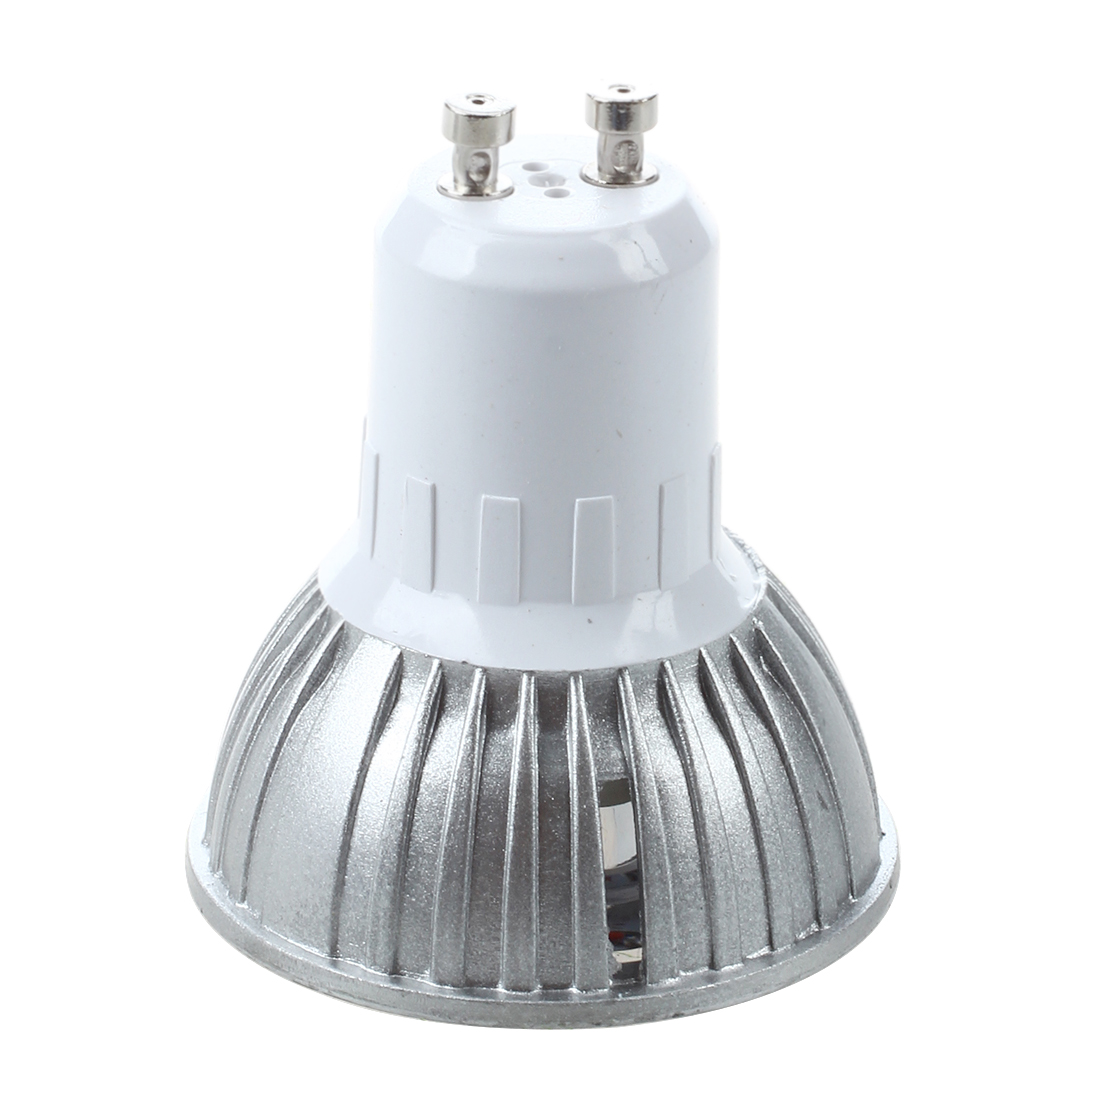 Ampoule Led 5 Watt Wholesale Price Gu10 Lampe Ampoule Bulb A 3 Led Blanc